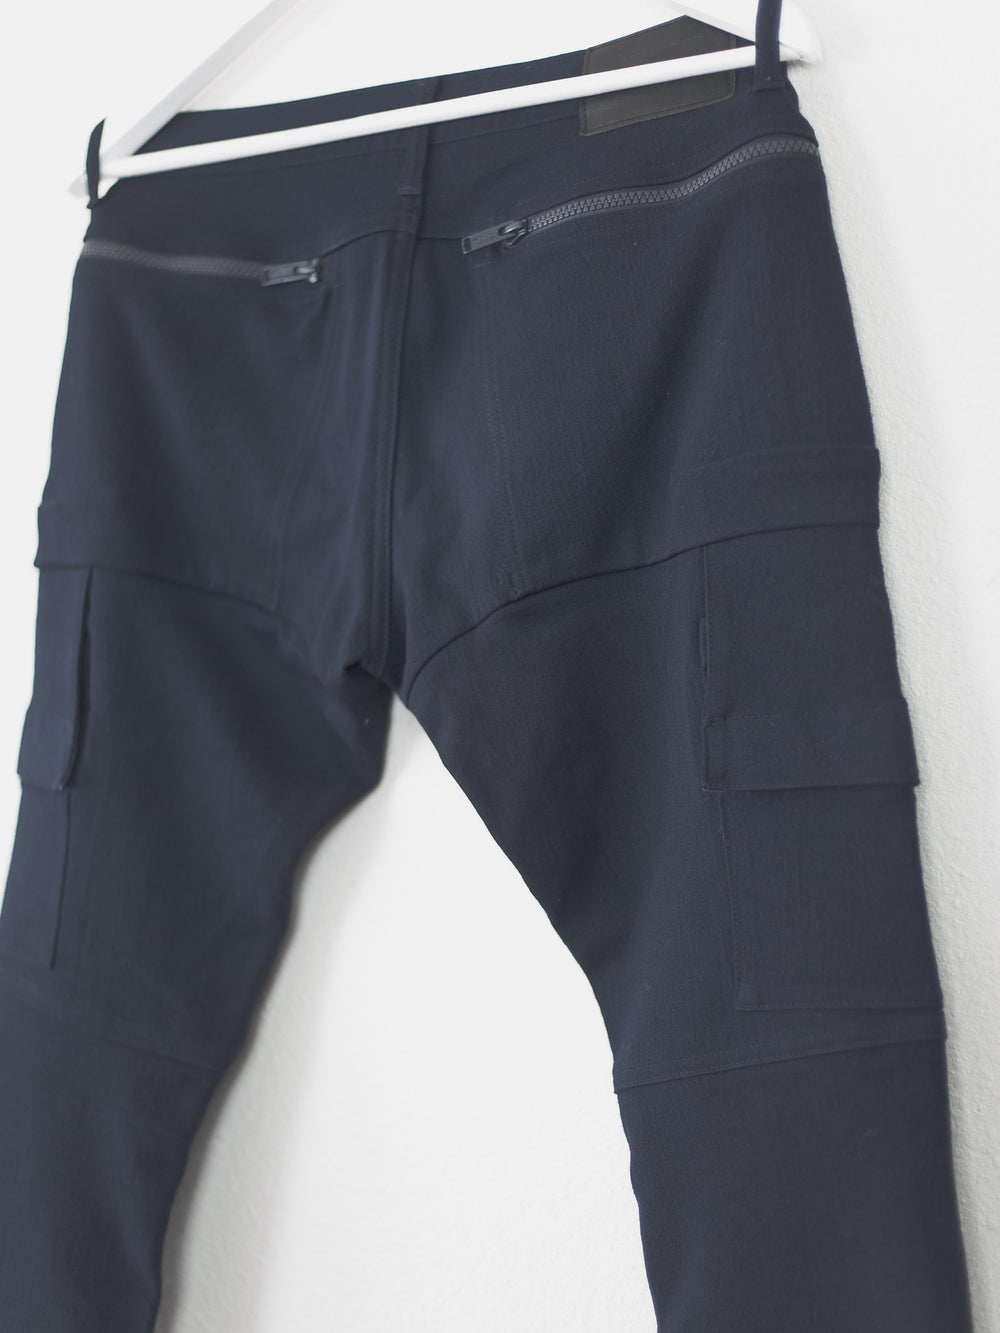 Undercover AW14 Zip Around Cargo Pants